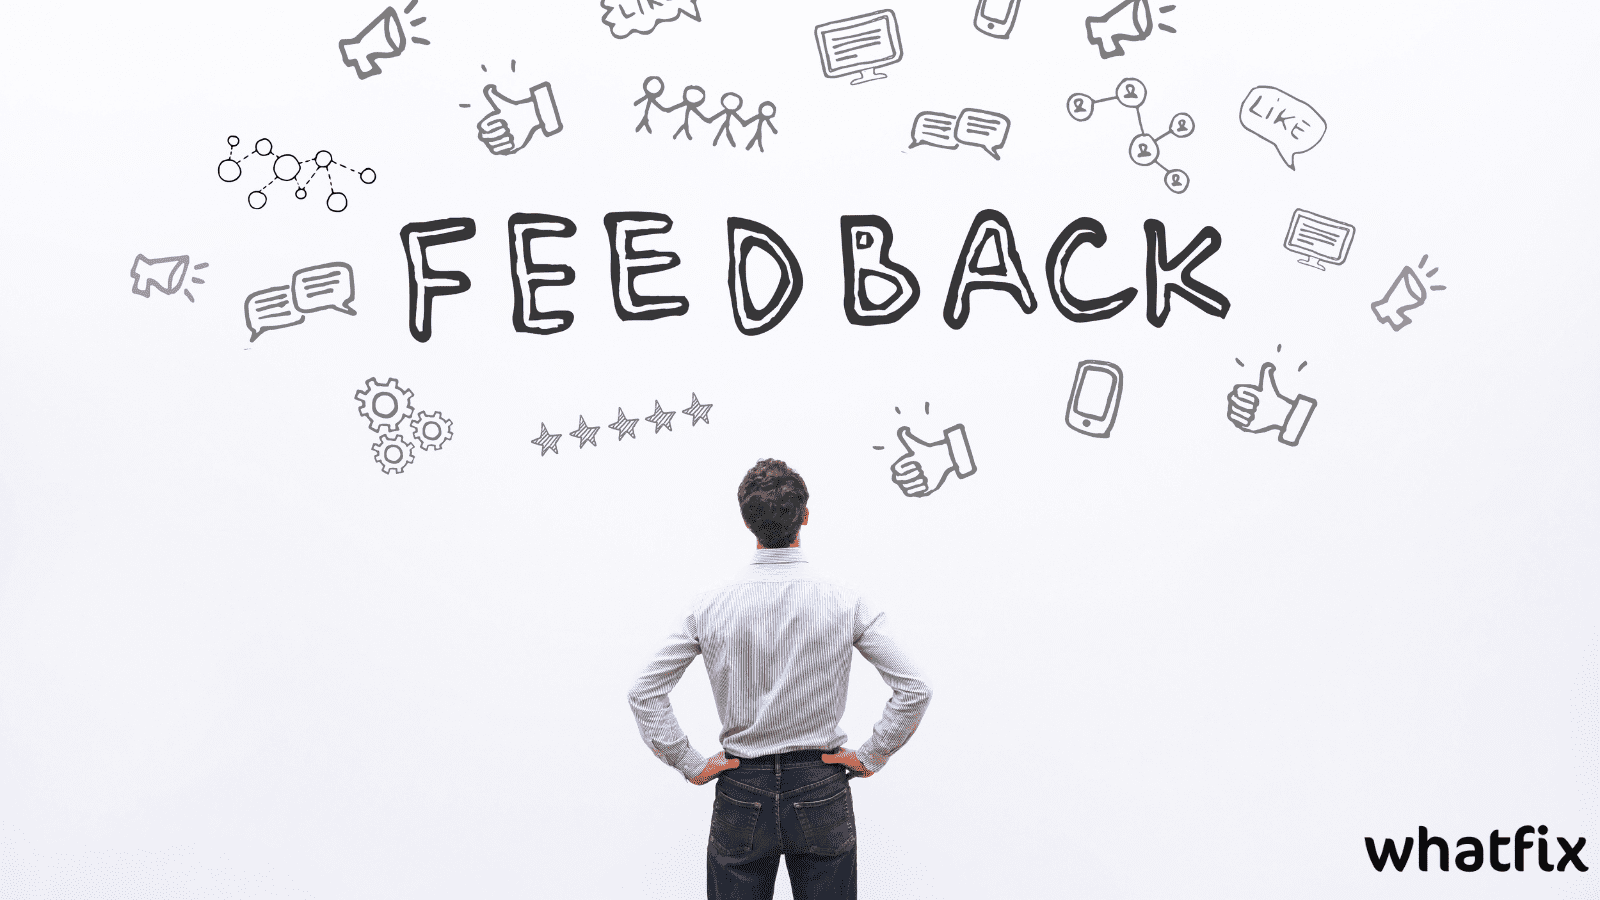 Providing employee feedback will help your employees understand what they are doing great and what they can do better.